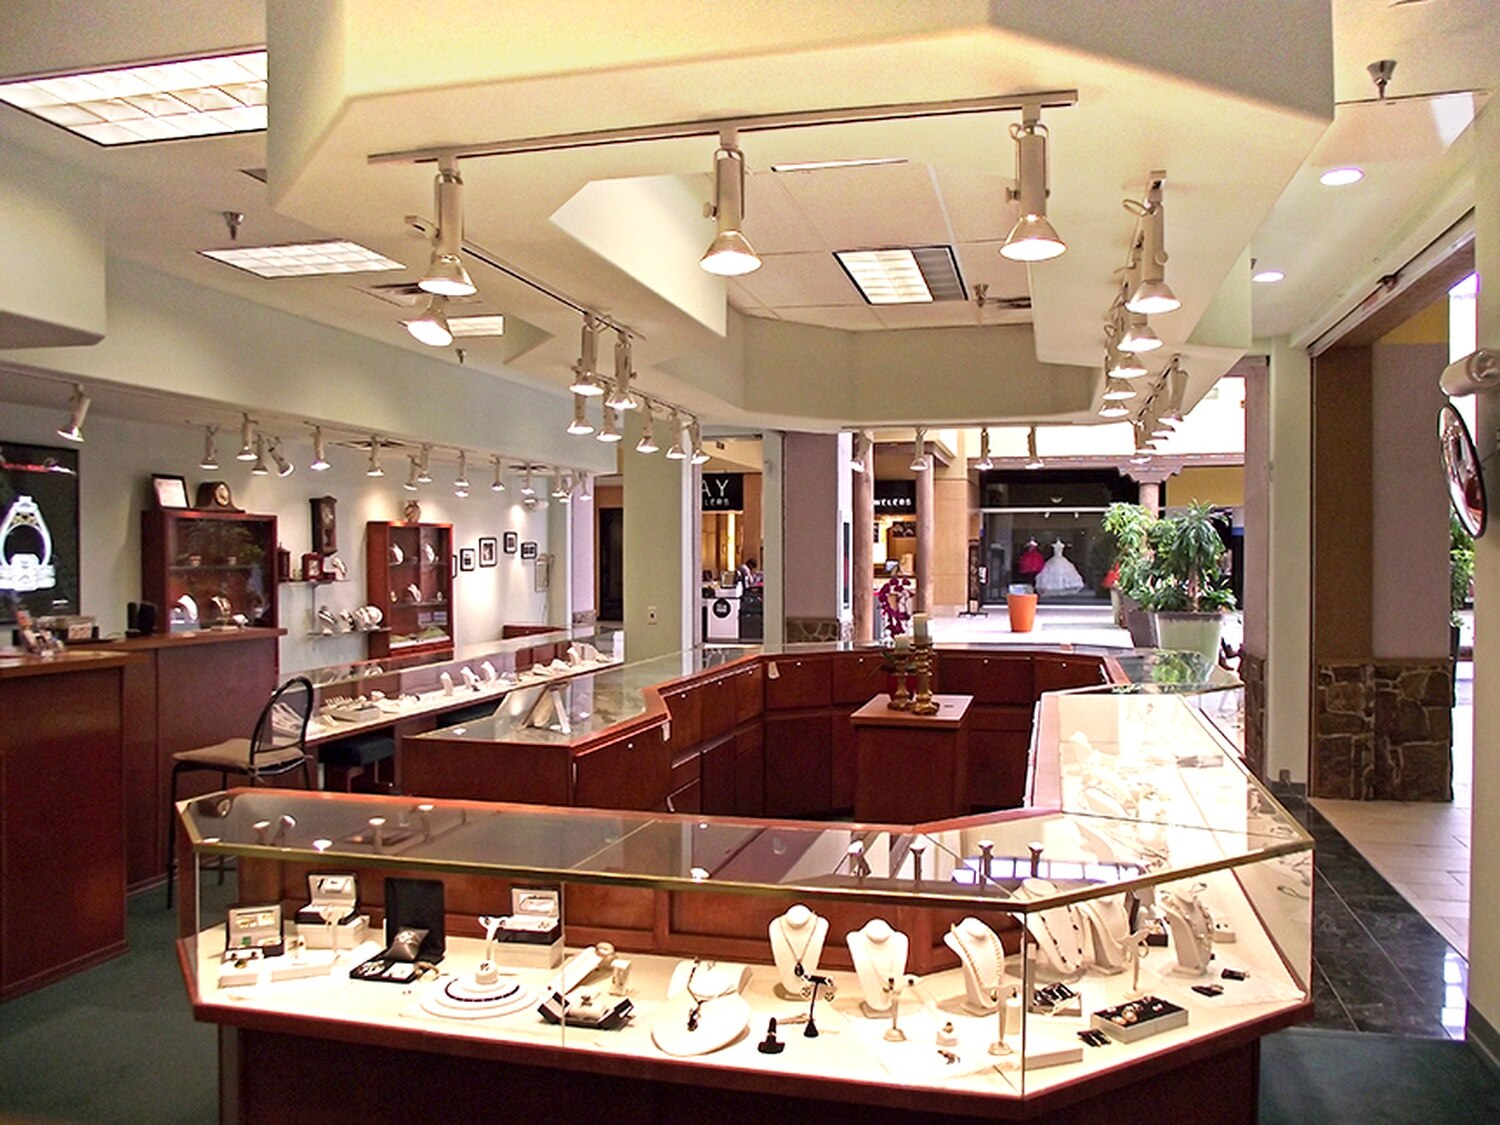 Pro Fix Jewelers recenty moved to this bigger spot, and owner David Giron says business there has doubled over his previous location in the mall.